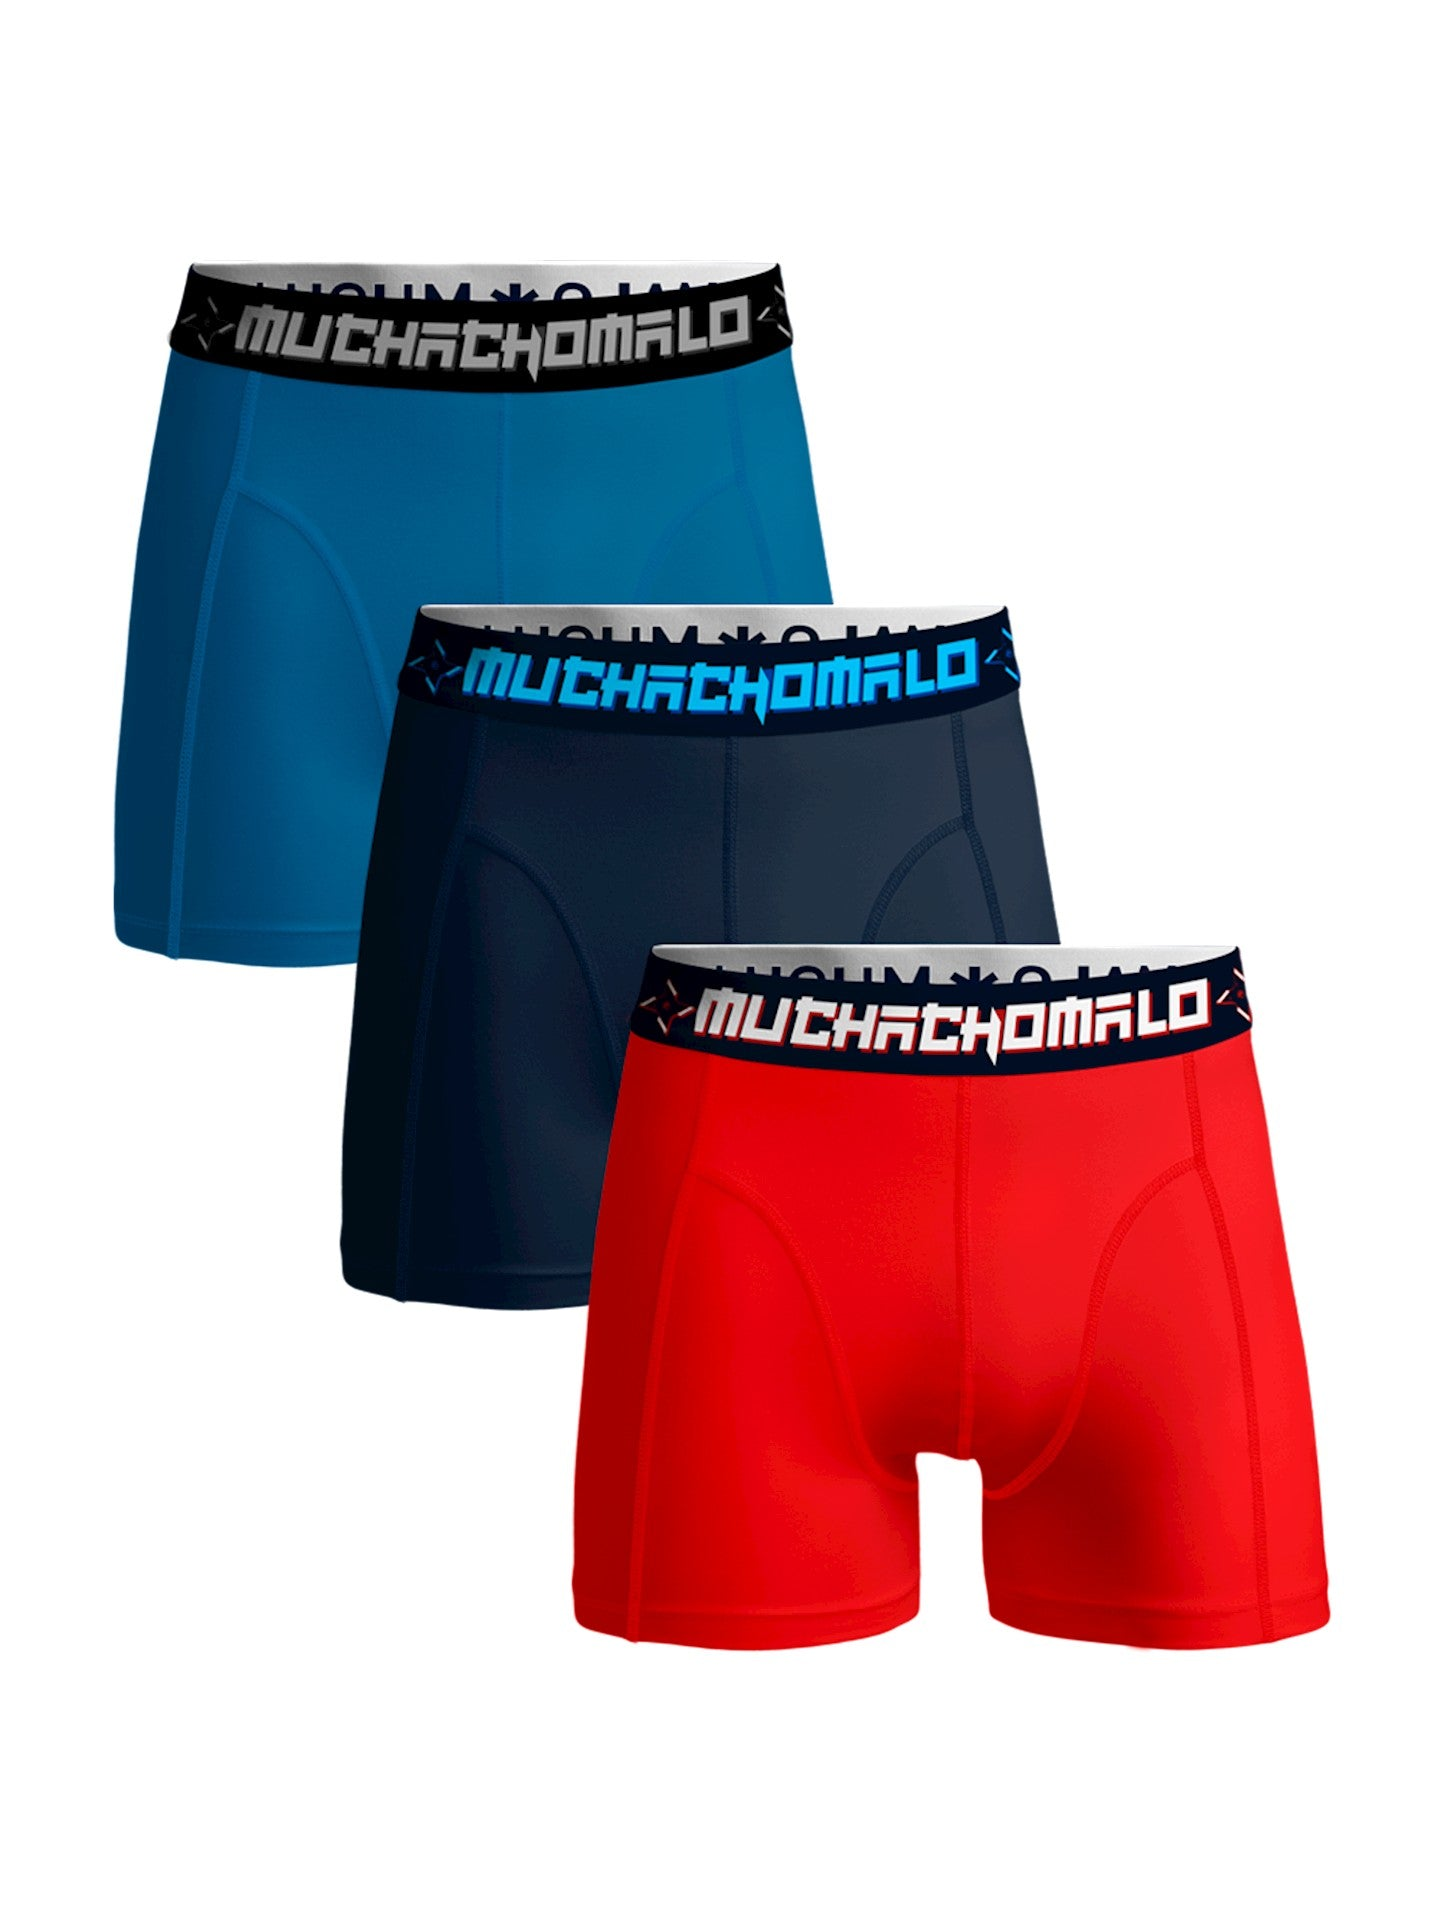 Men 3-Pack Short Solid SOLID1010 - Jambelles Muchachomalo M / 348 Red/Blue/D Blue